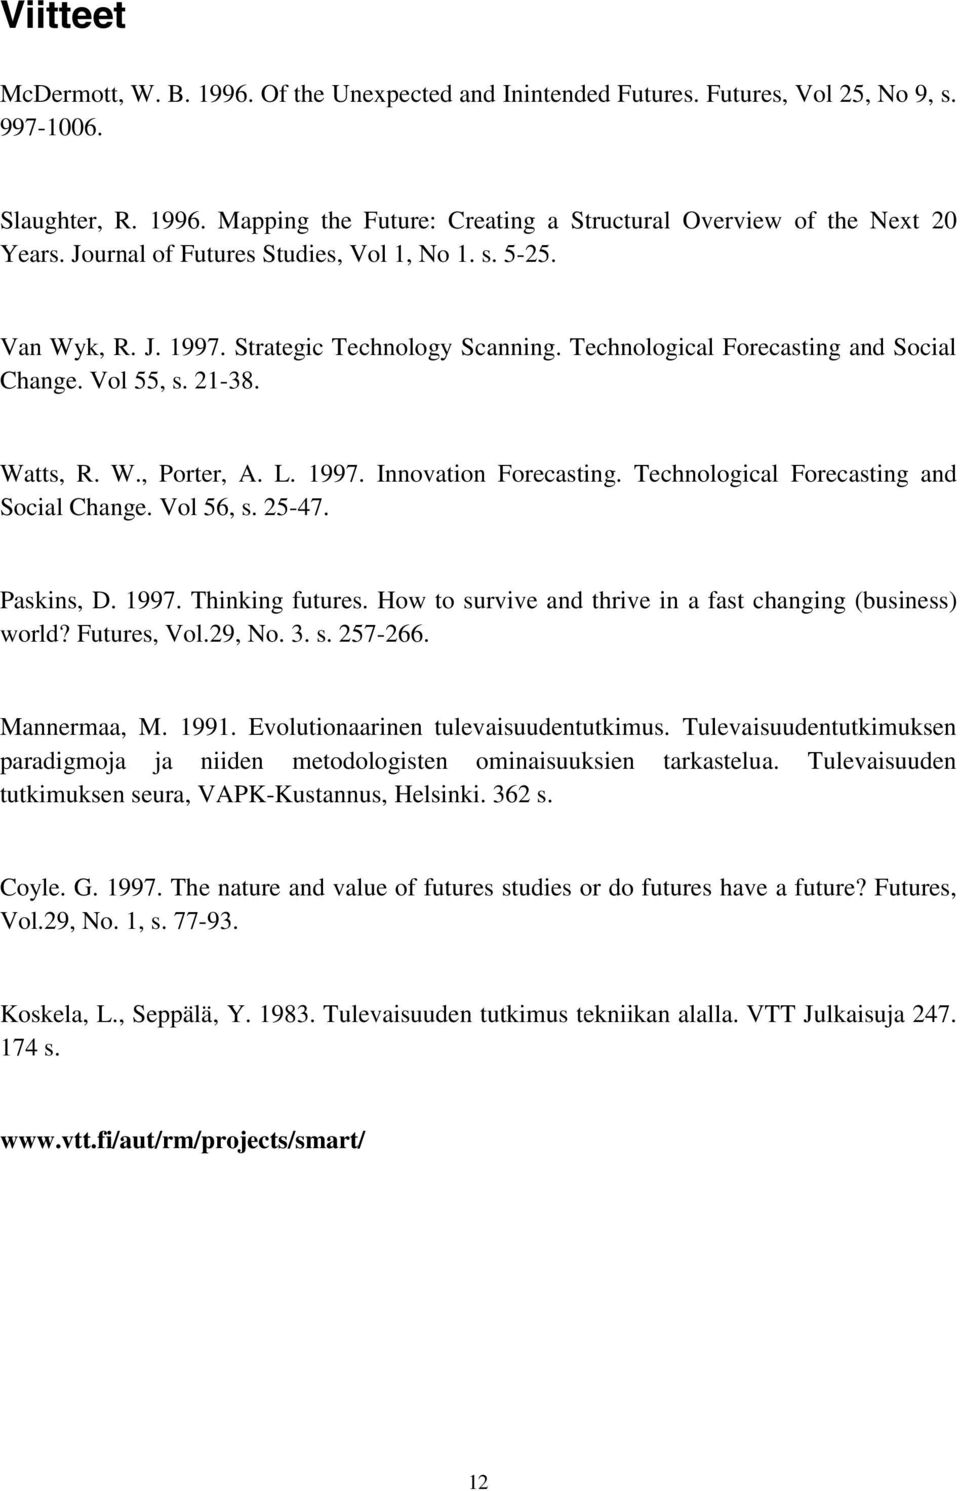 Technological Forecasting and Social Change. Vol 56, s. 25-47. Paskins, D. 1997. Thinking futures. How to survive and thrive in a fast changing (business) world? Futures, Vol.29, No. 3. s. 257-266.